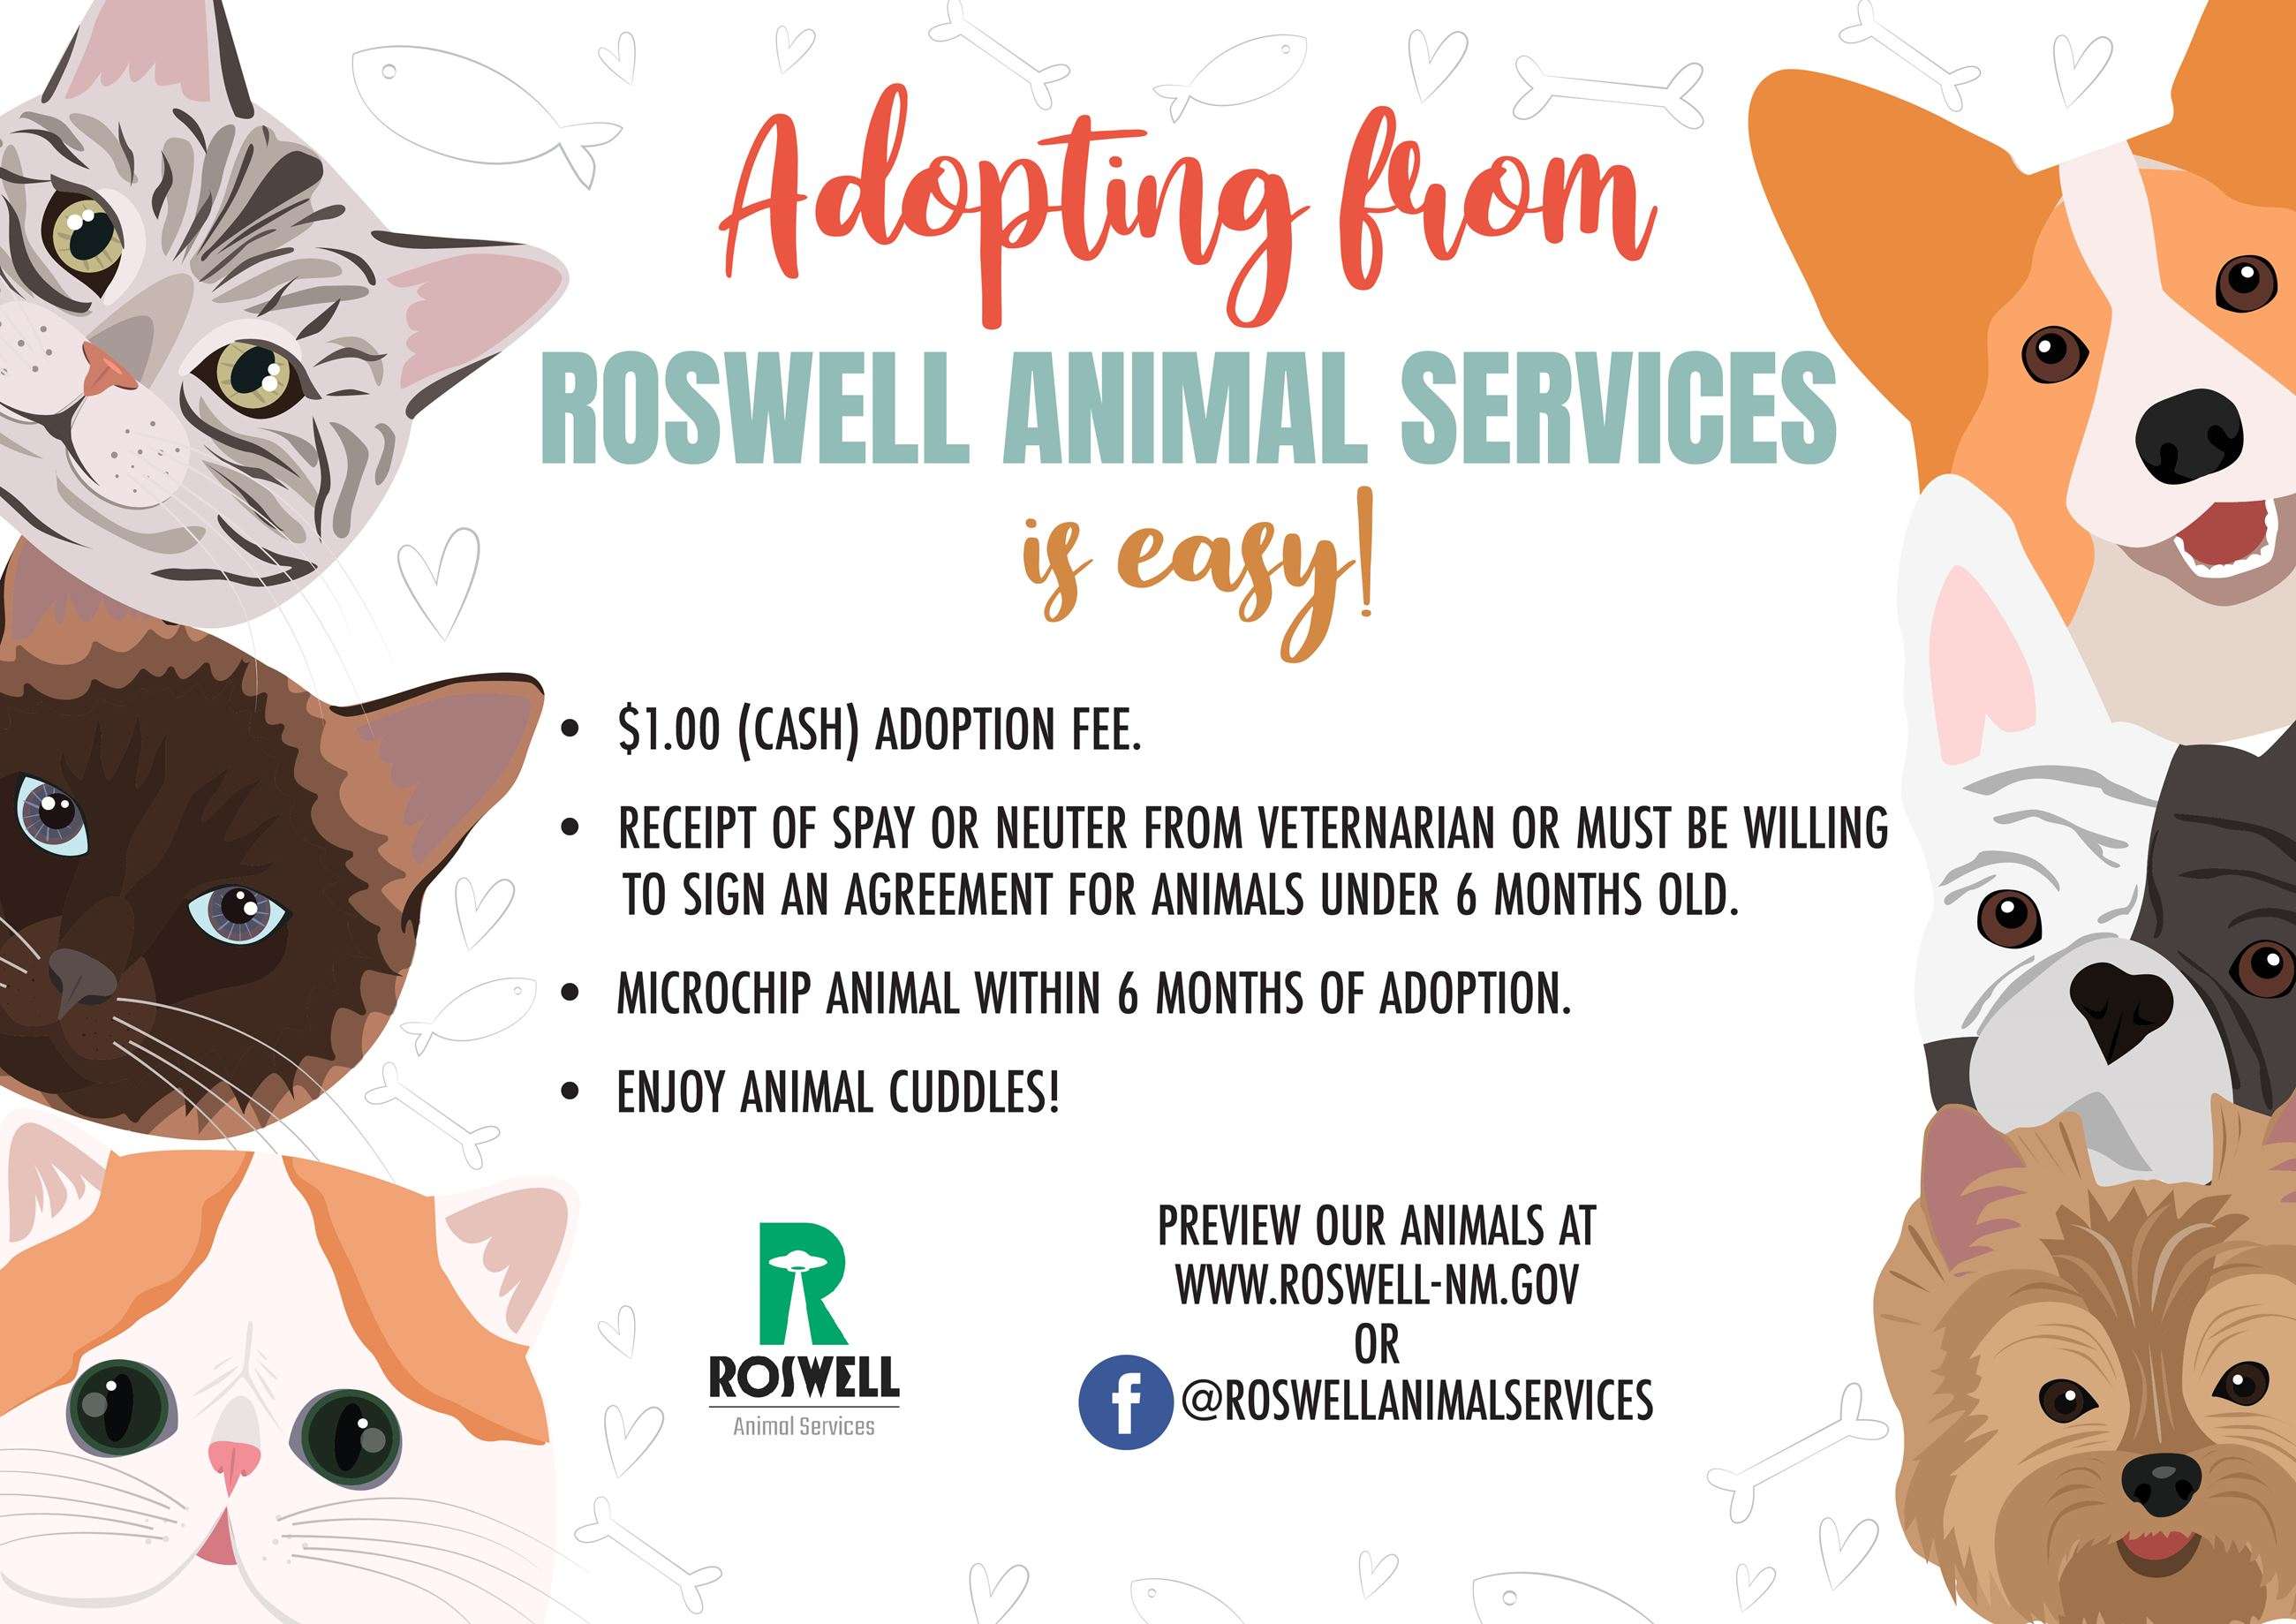 Info Graphic explaining how to adopt with Roswell Animal Services